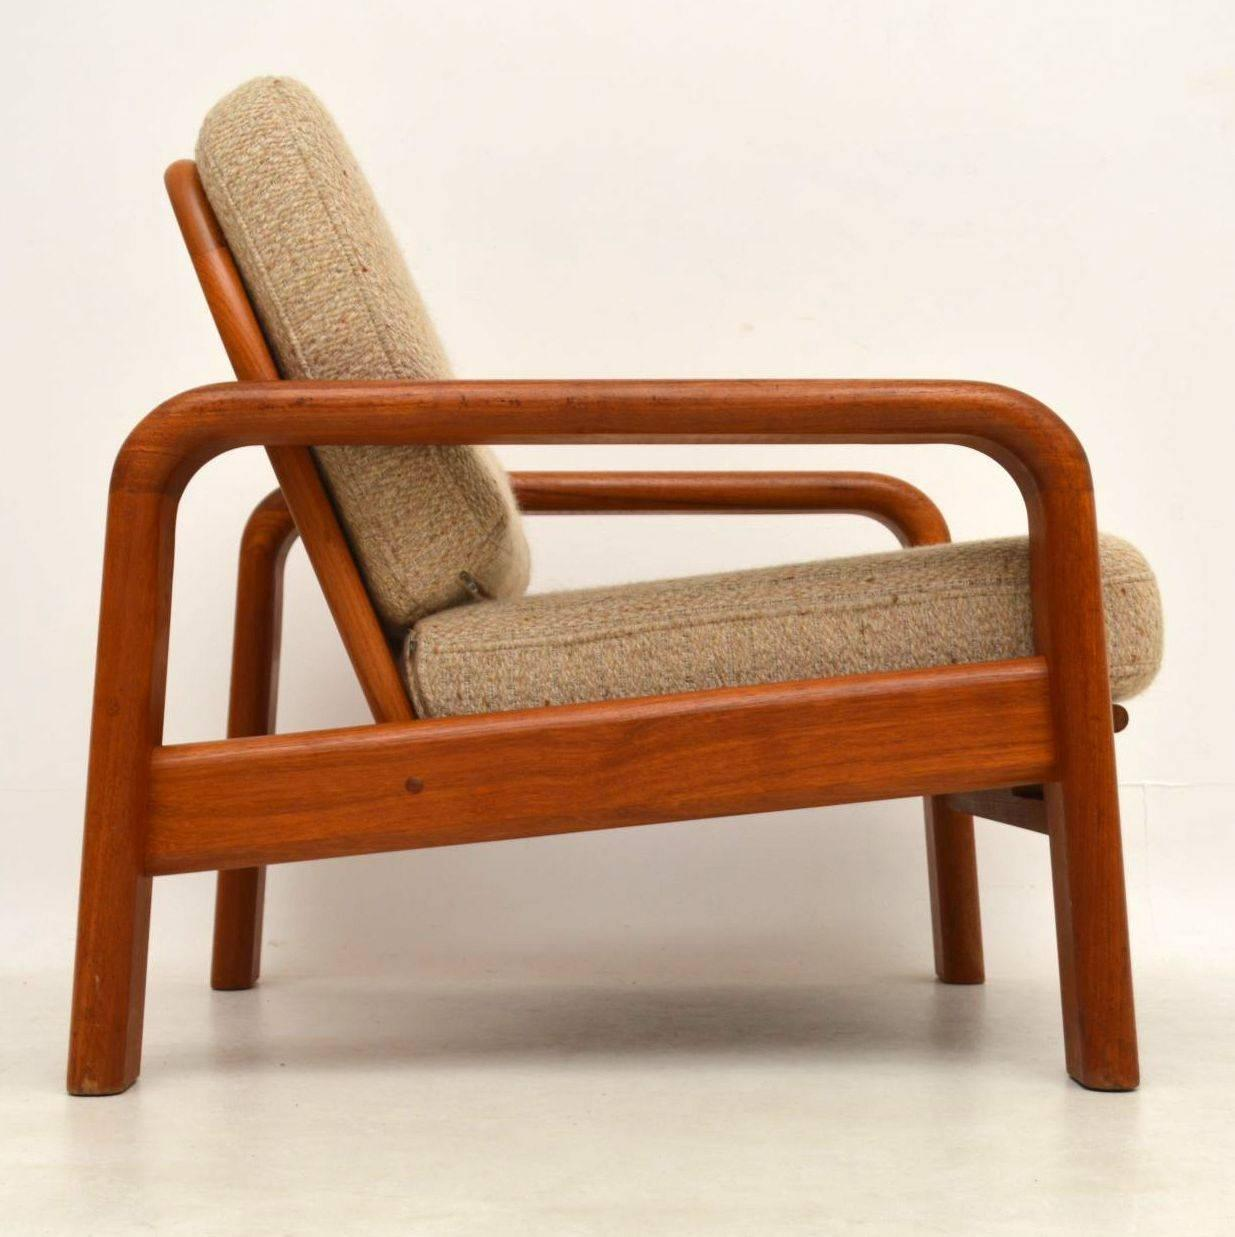 Delicieux A Stylish And Very Well Made Pair Of Solid Teak Vintage Armchairs, These  Were Made